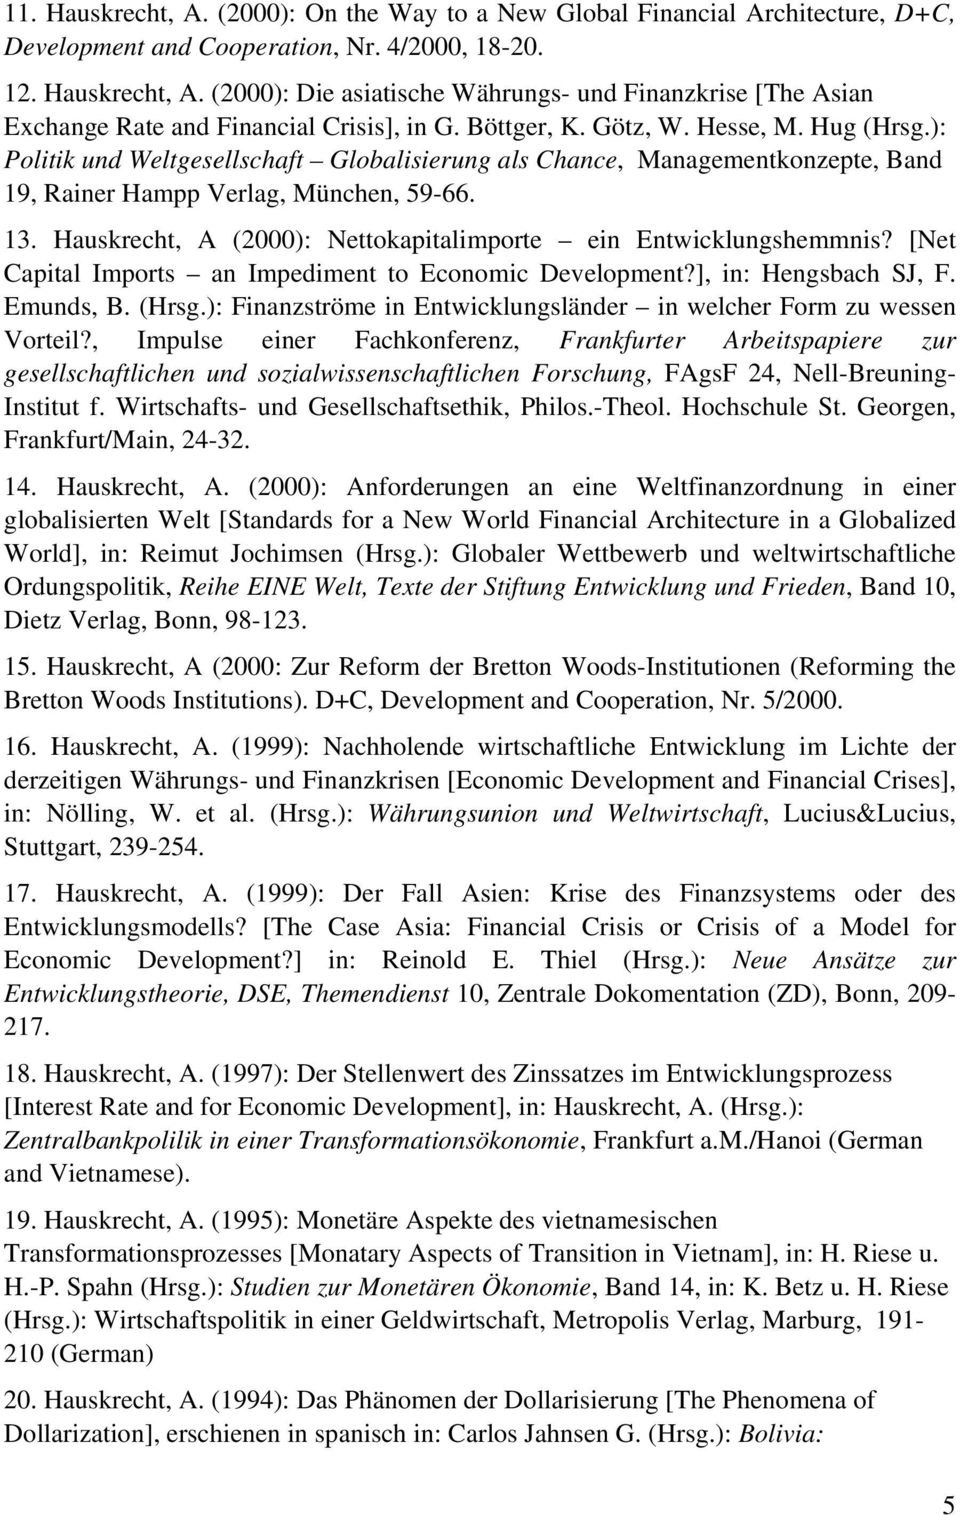 Hauskrecht, A (2000): Nettokapitalimporte ein Entwicklungshemmnis? [Net Capital Imports an Impediment to Economic Development?], in: Hengsbach SJ, F. Emunds, B. (Hrsg.